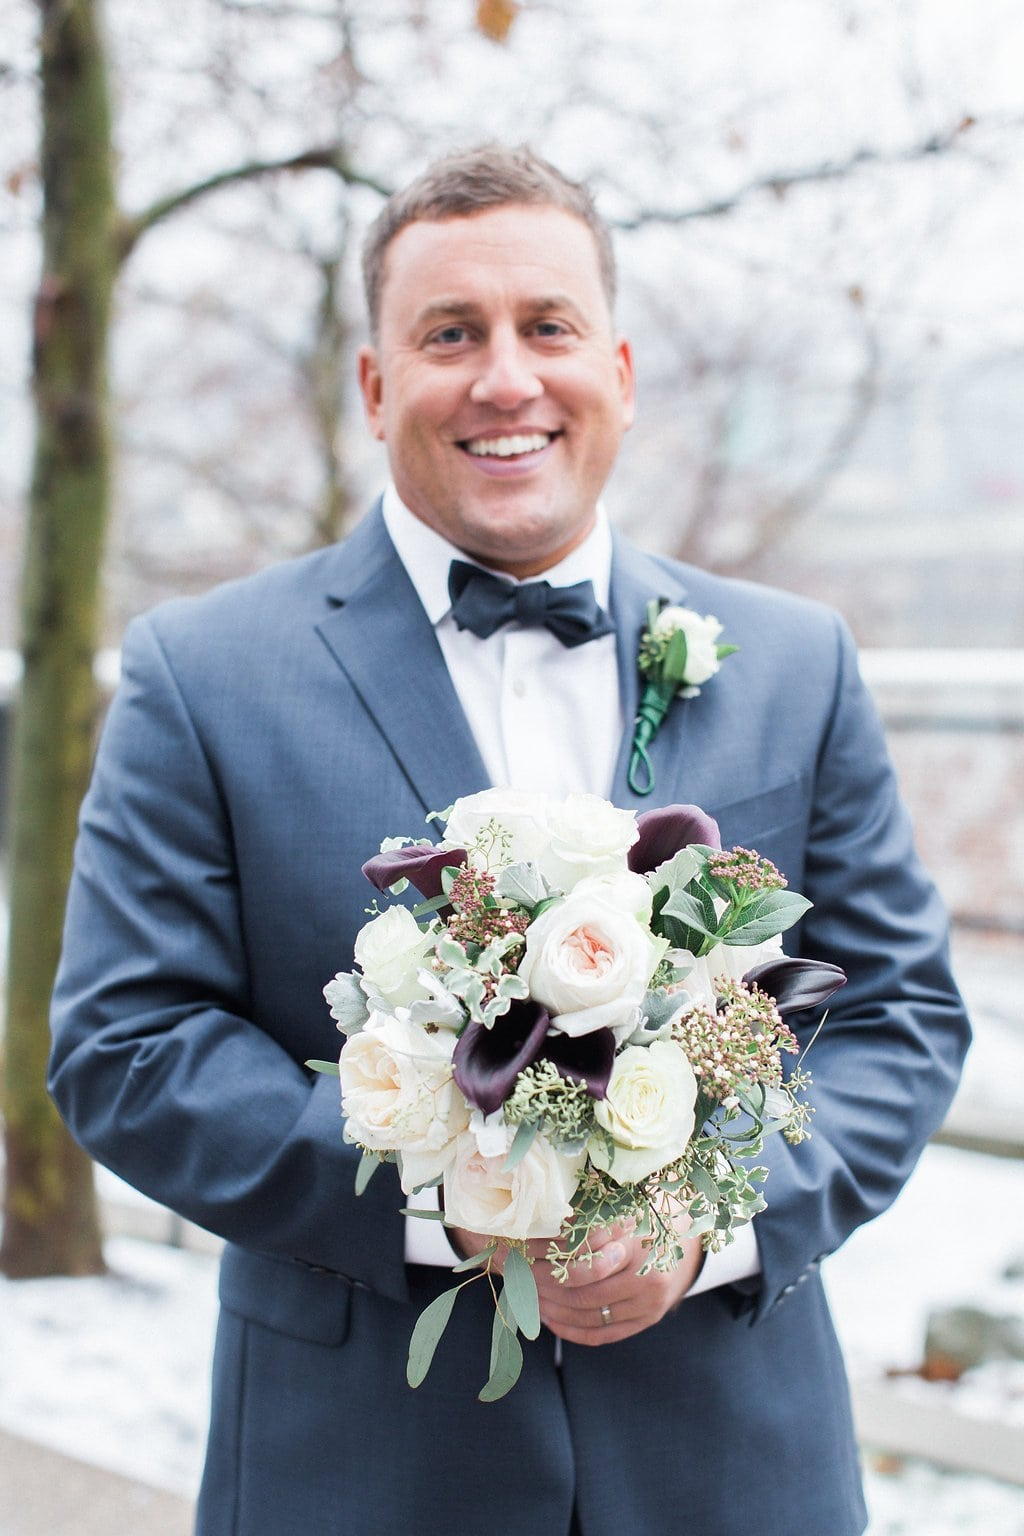 Photo of the groom holding the bride's bouquet